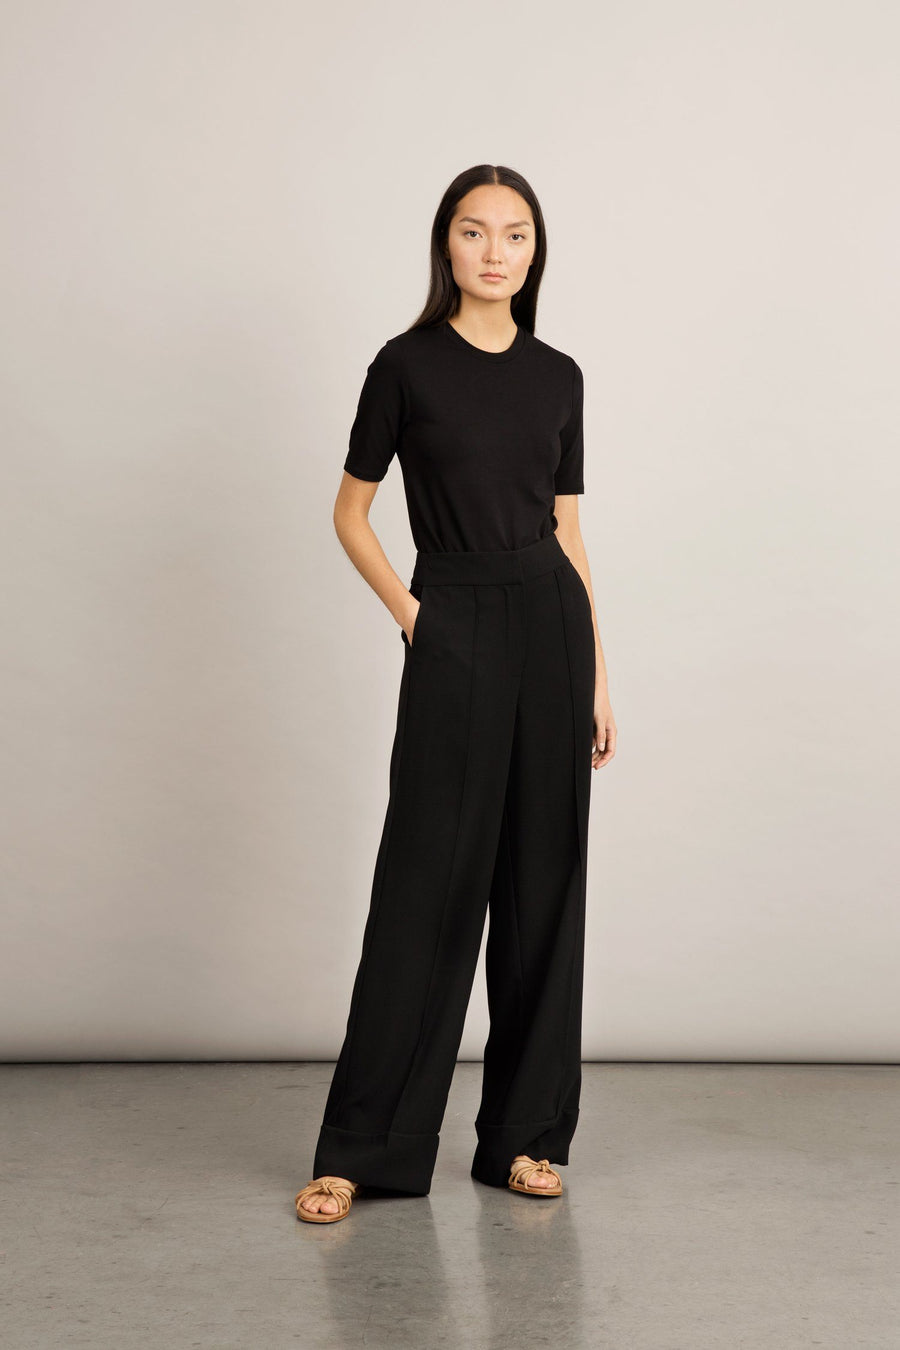 BOGAR TROUSERS - BLACK Trousers Stylein